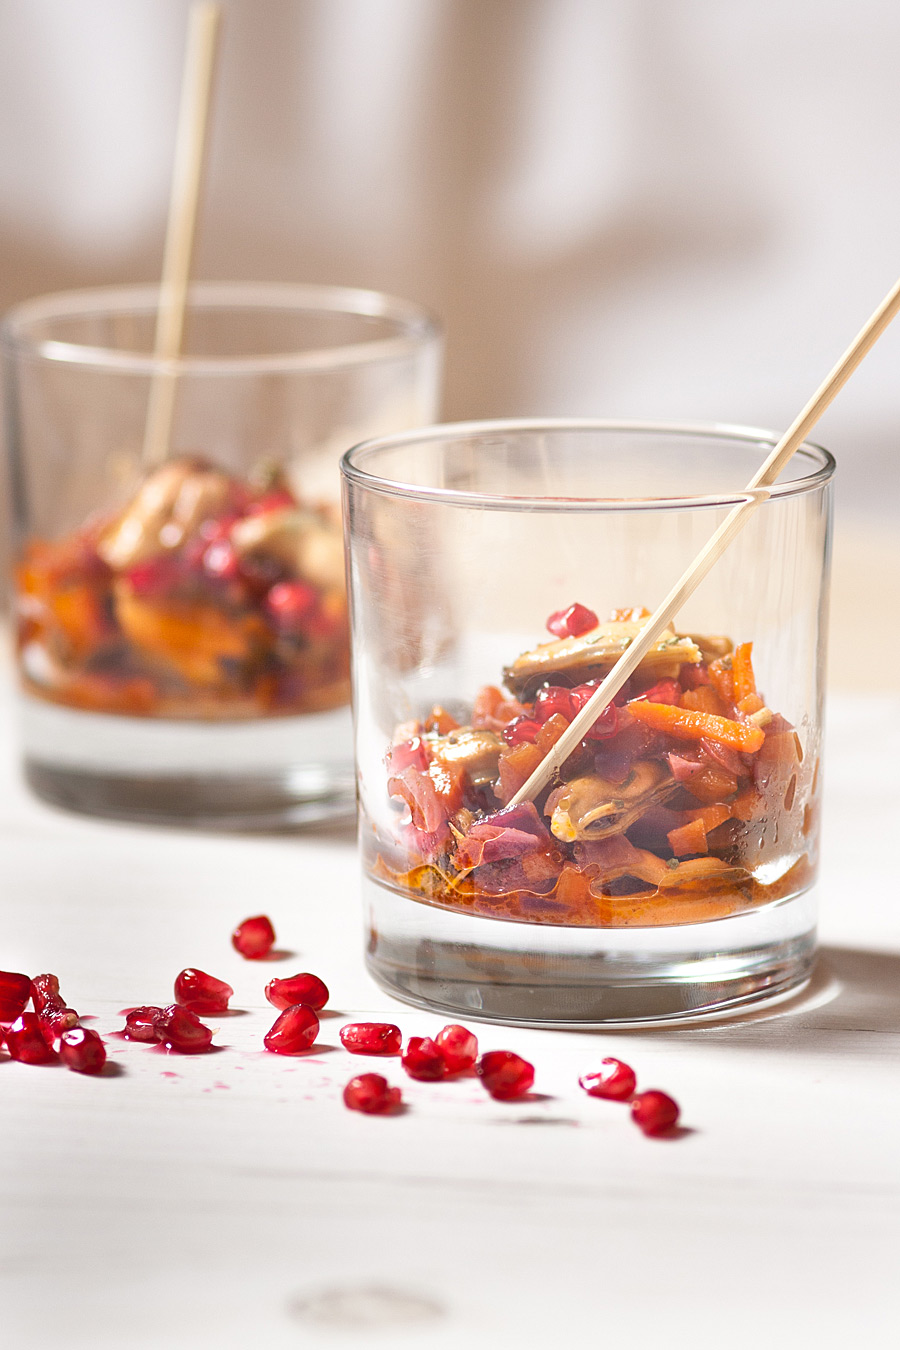 Marinated mussels sprinkled with pomegranate|Lau Sunday cooks